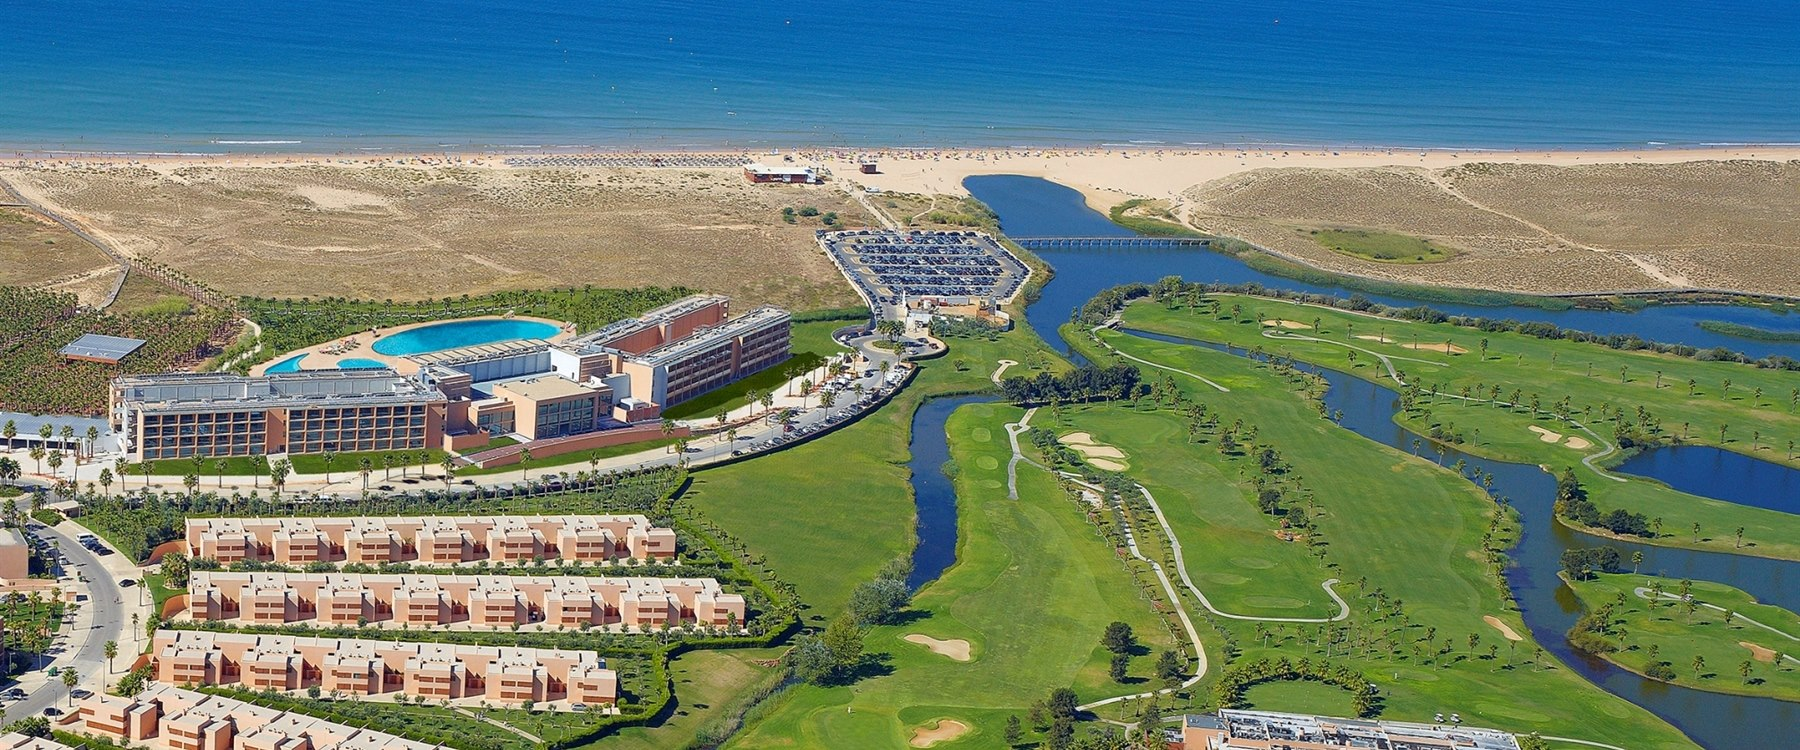 Aerial View of Vidamar Resort Algarve